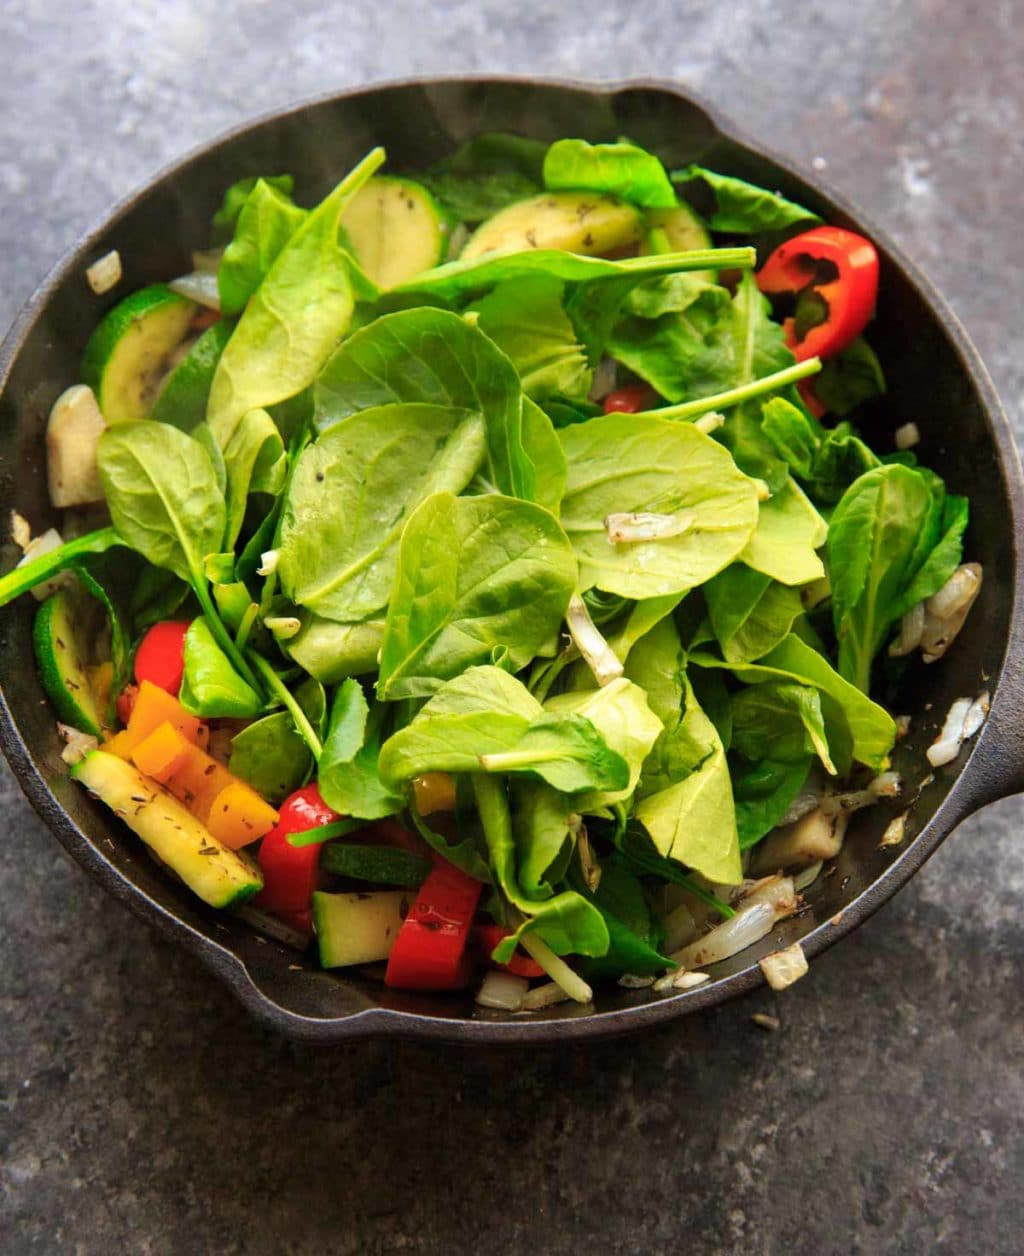 Adding spinach to sauteed vegetables with zucchini, onion, mini sweet peppers